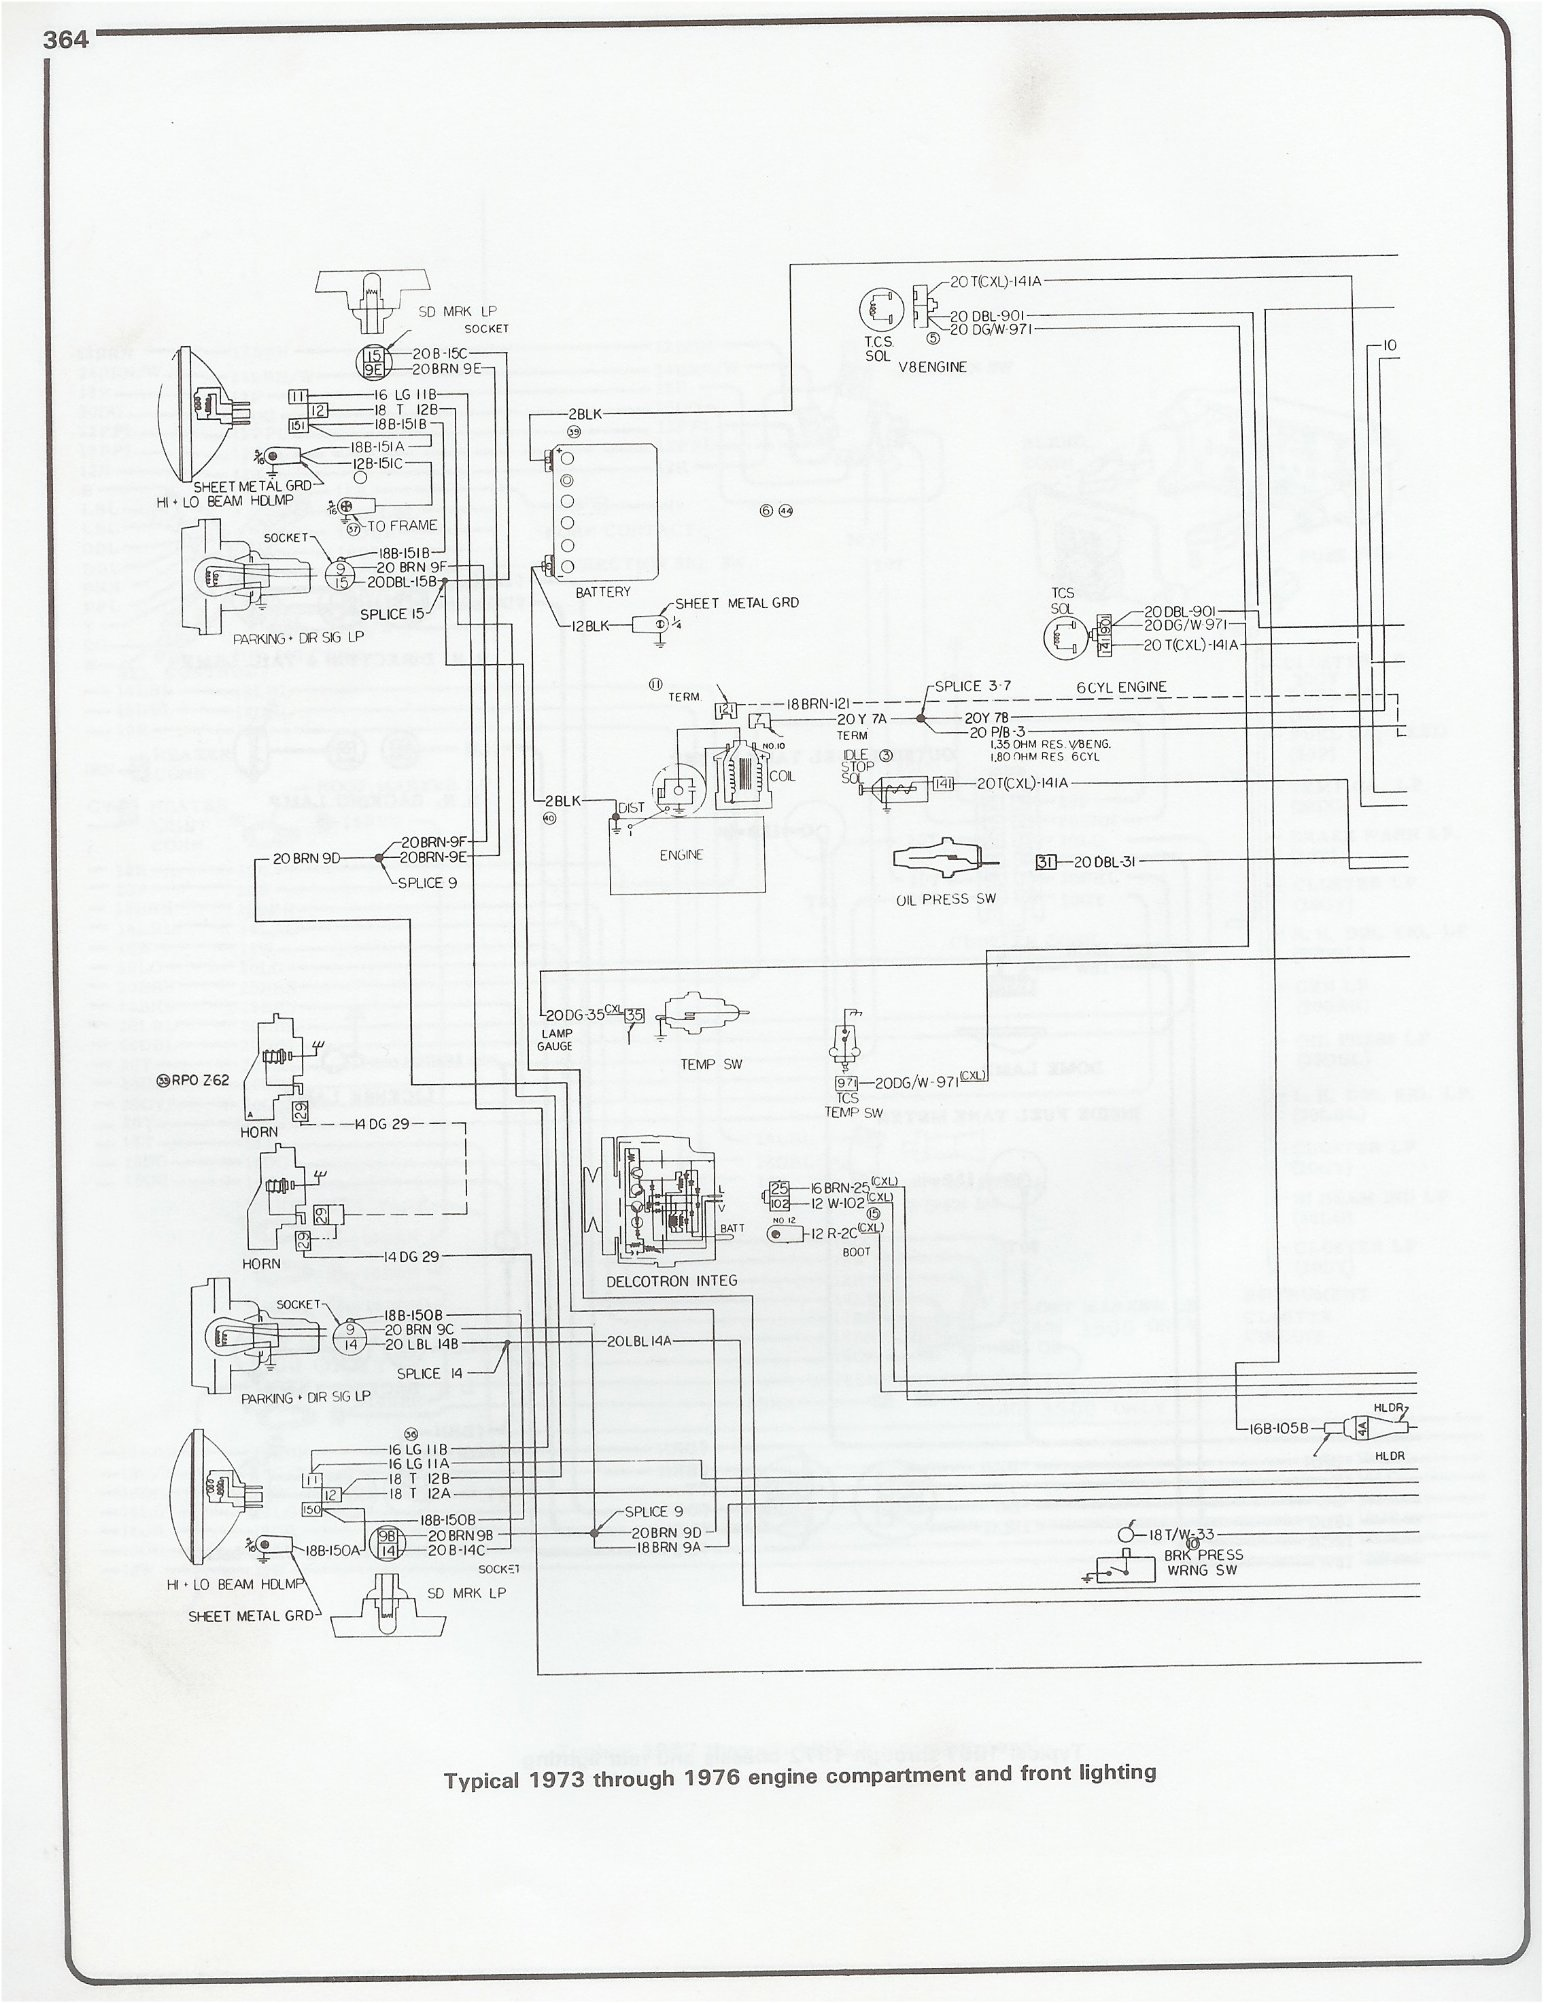 complete 73 87 wiring diagrams rh forum 73 87chevytrucks com 1976 k5 blazer wiring diagram 1998 Chevy Blazer Wiring Diagram